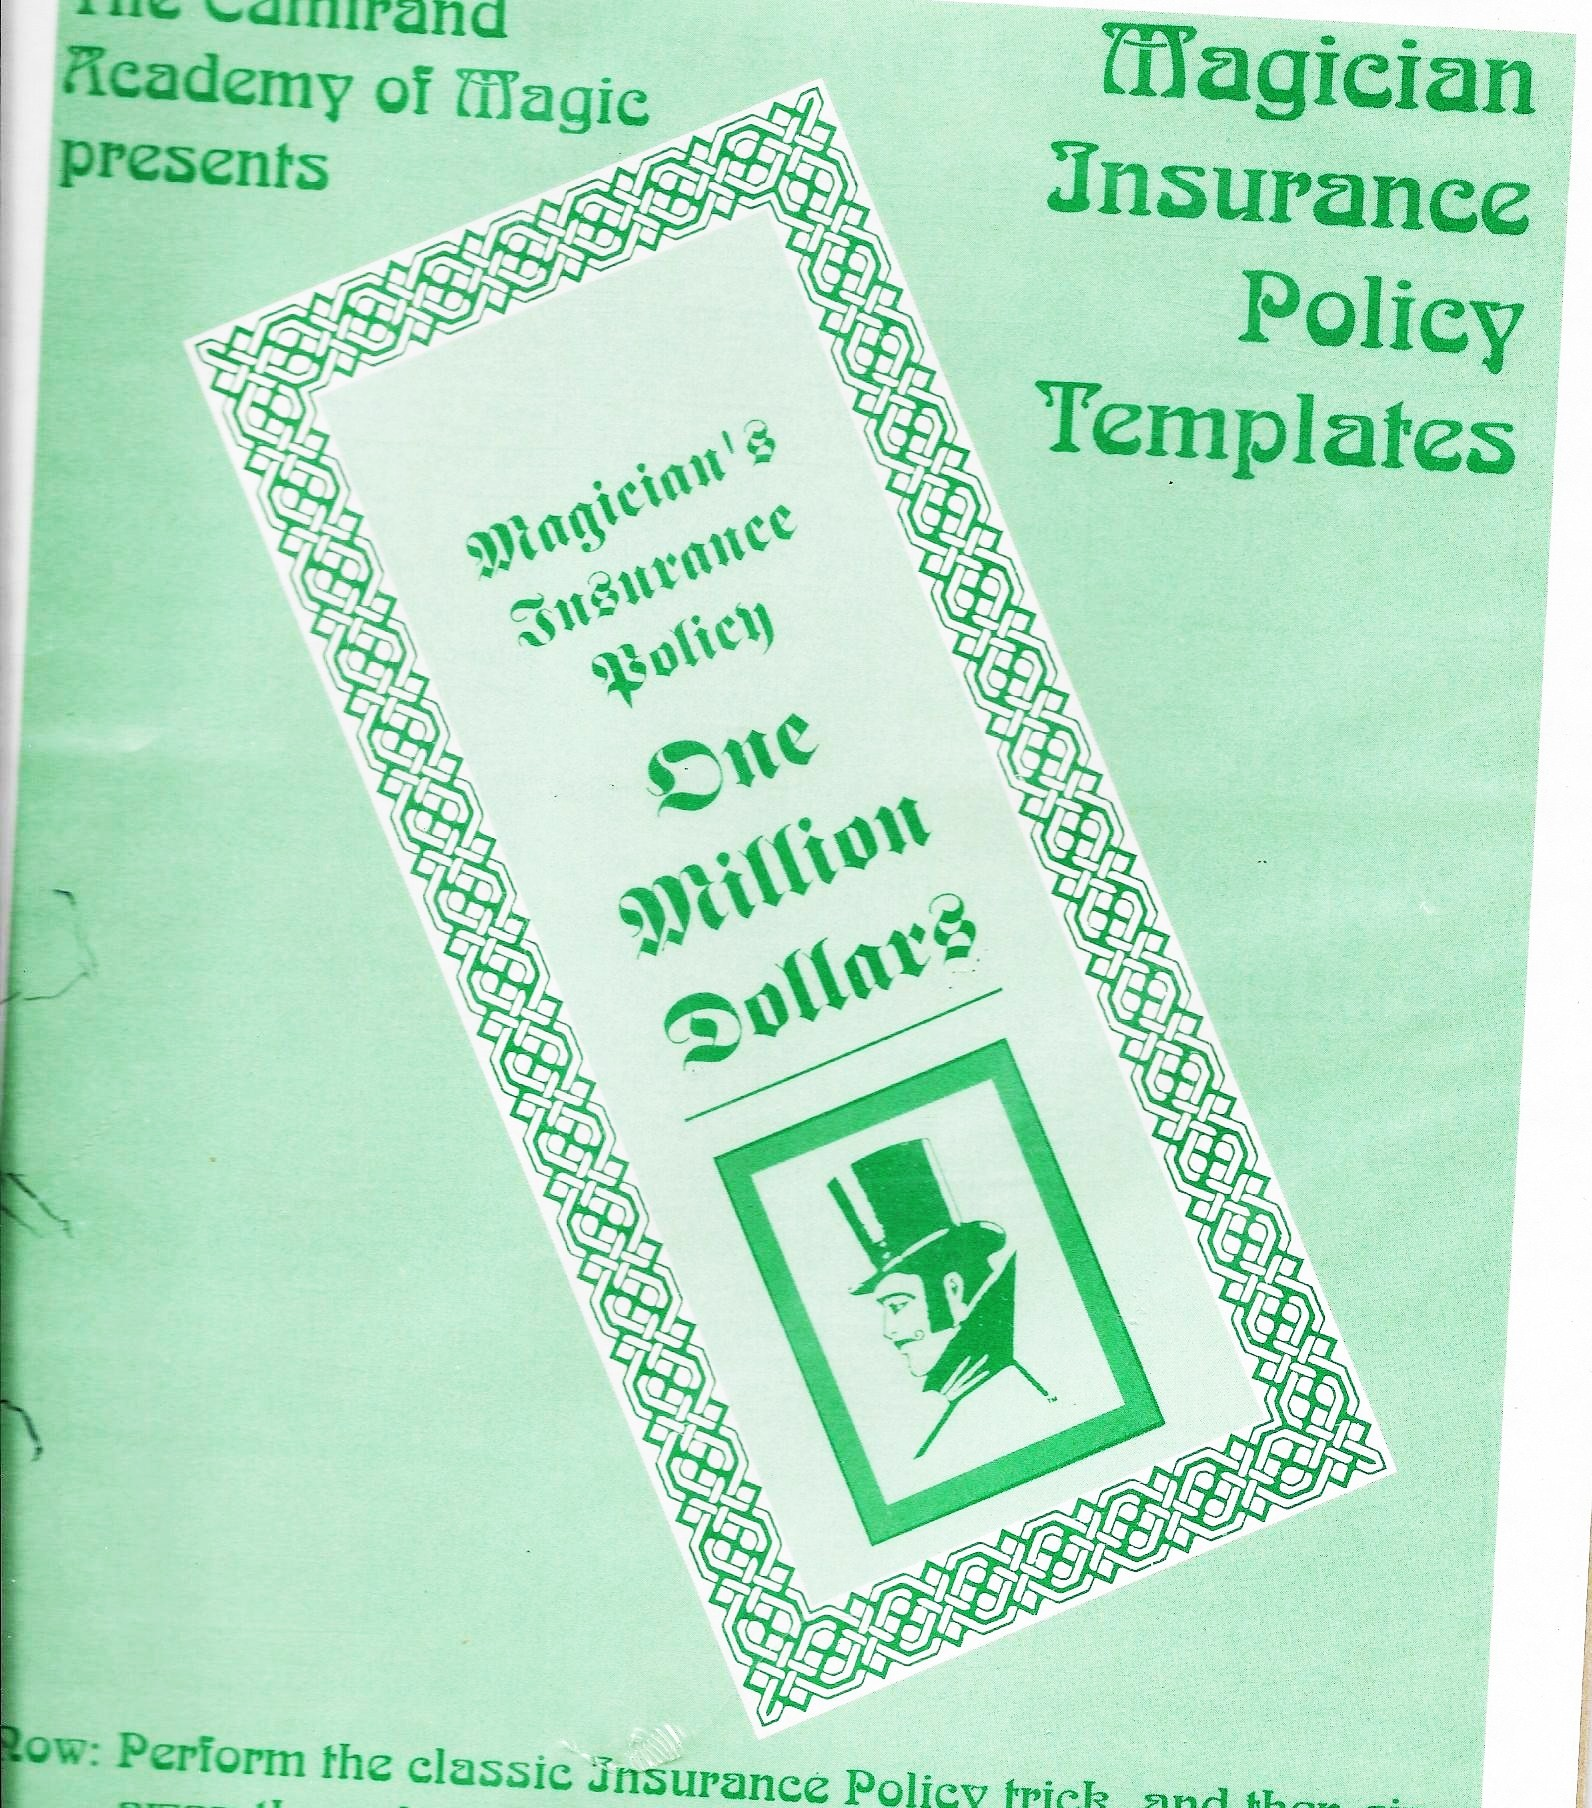 magicians insurance policy template